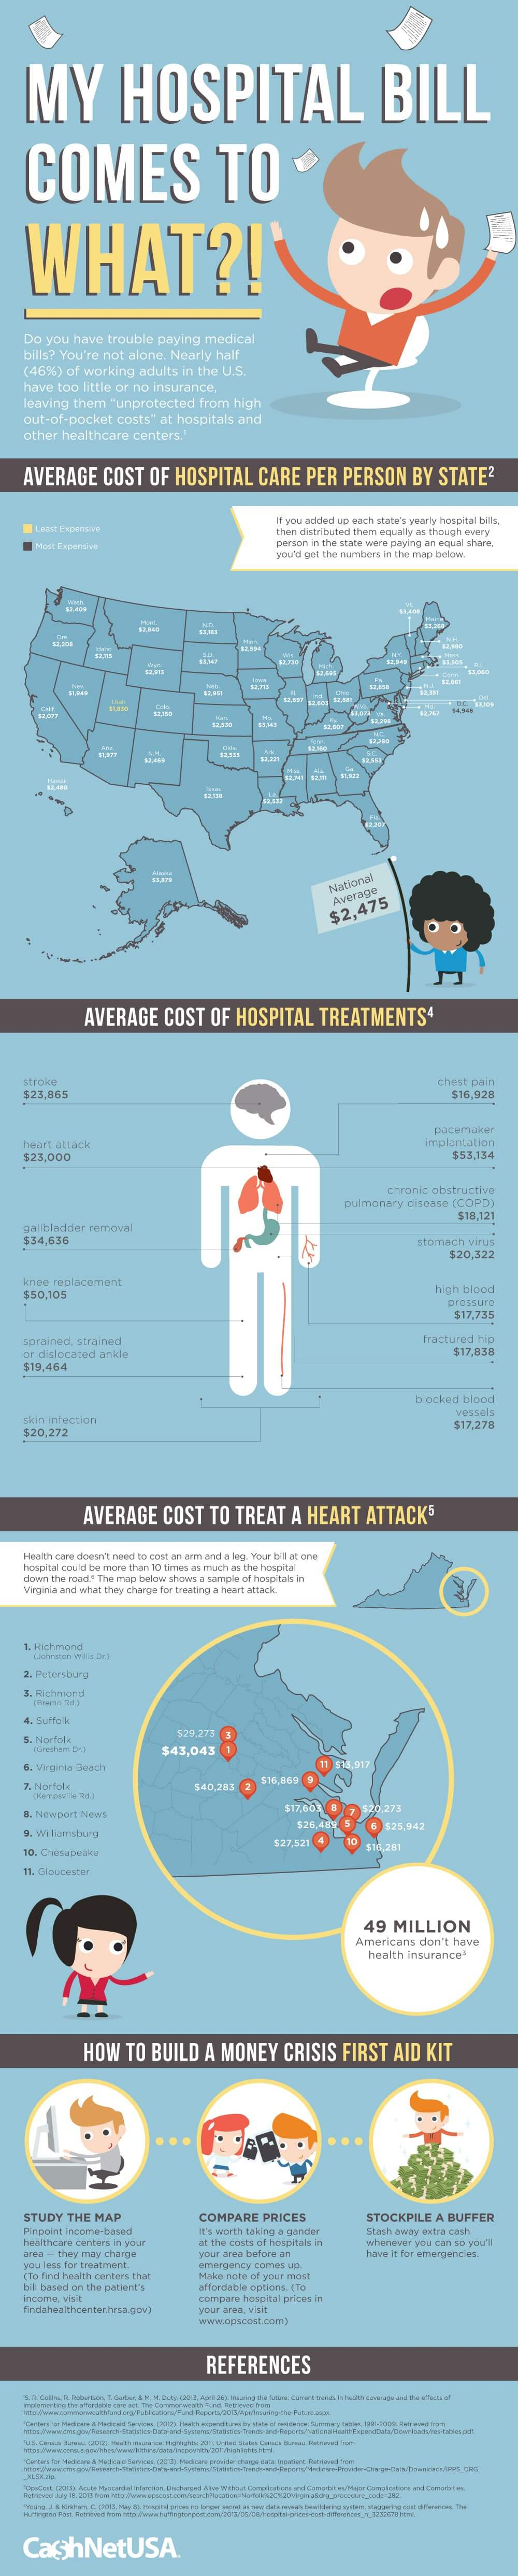 My Hospital Bill Comes to WHAT?! (Infographic)